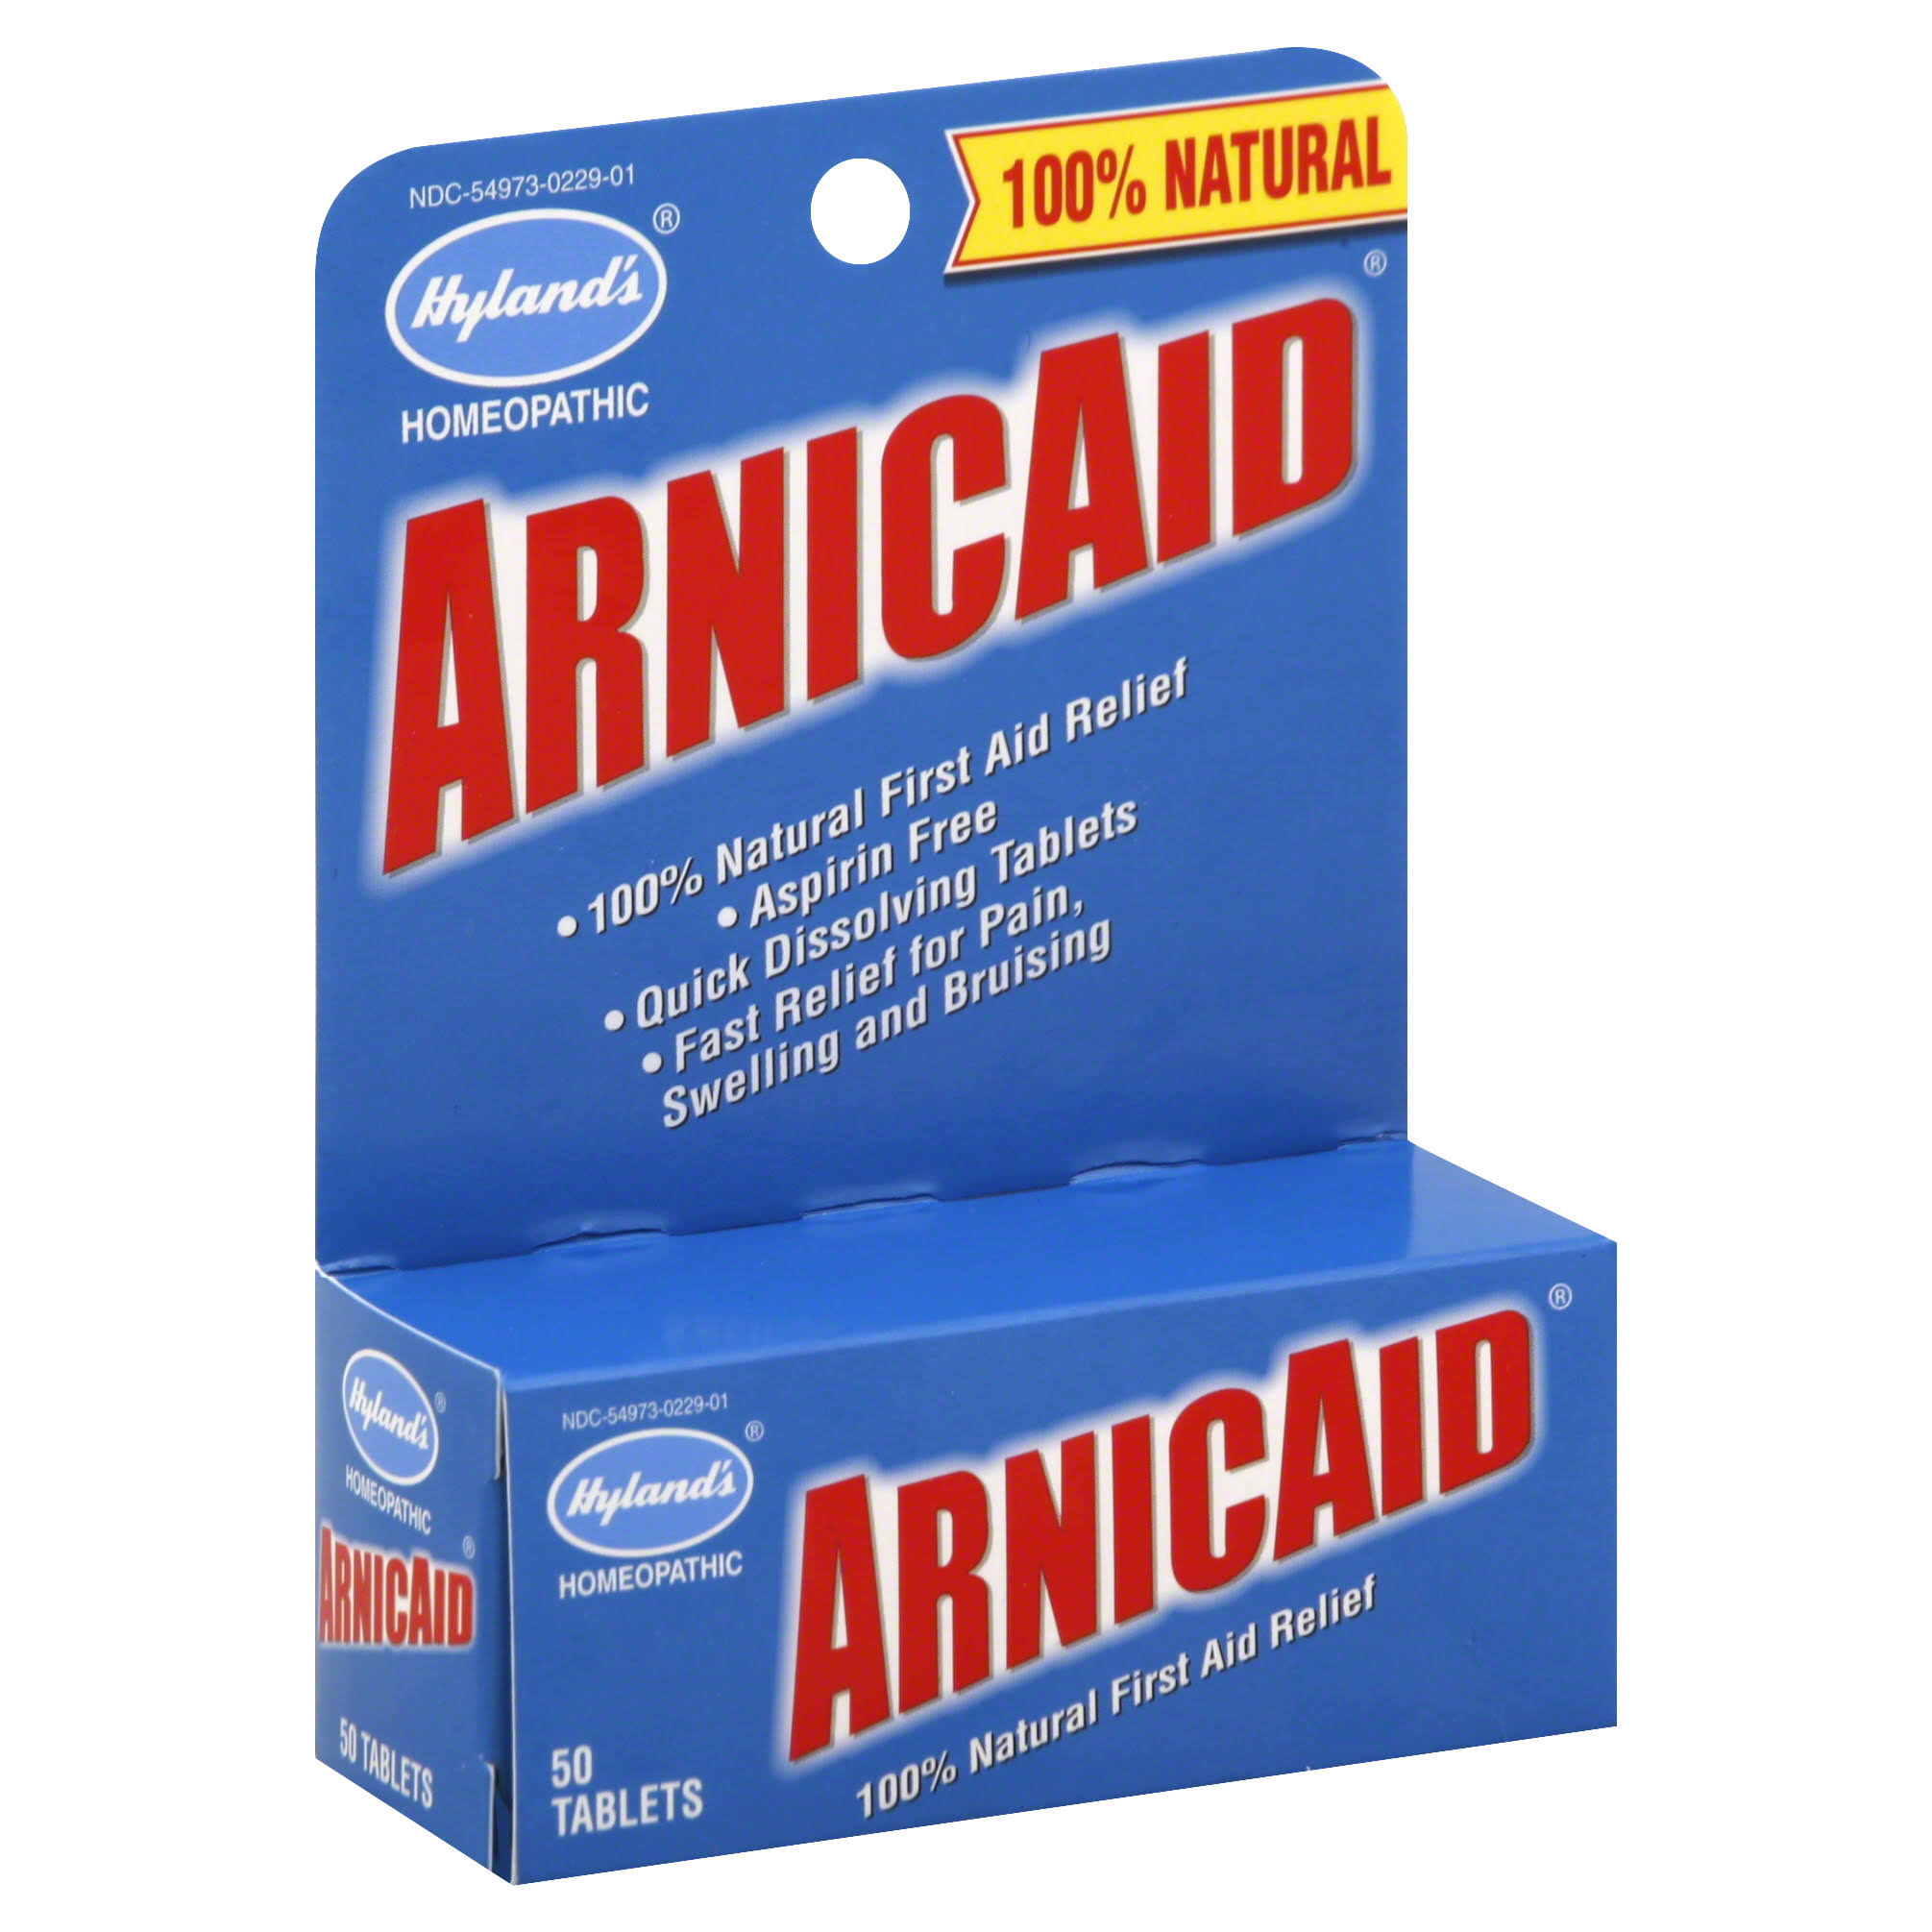 Hyland's Arnicaid First Aid Relief Tablets - 50 Tablets